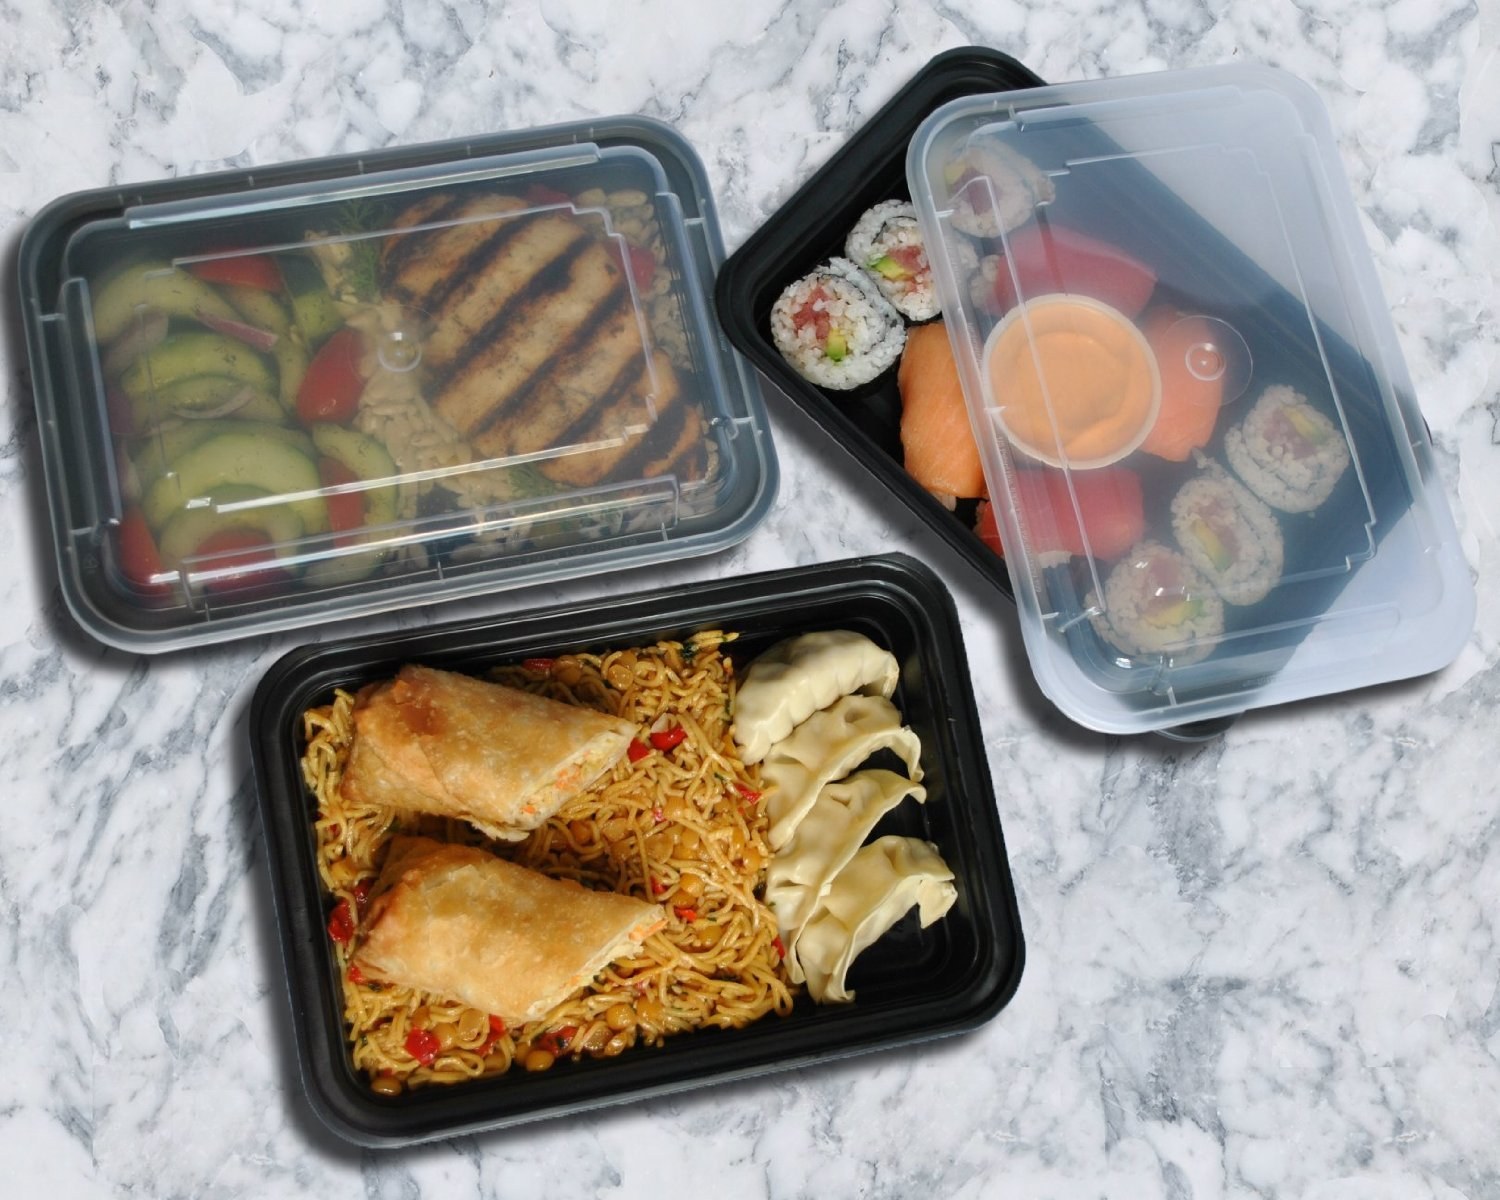 microwave meal prep plastic food containers lid divided plate bento box lunch ebay. Black Bedroom Furniture Sets. Home Design Ideas